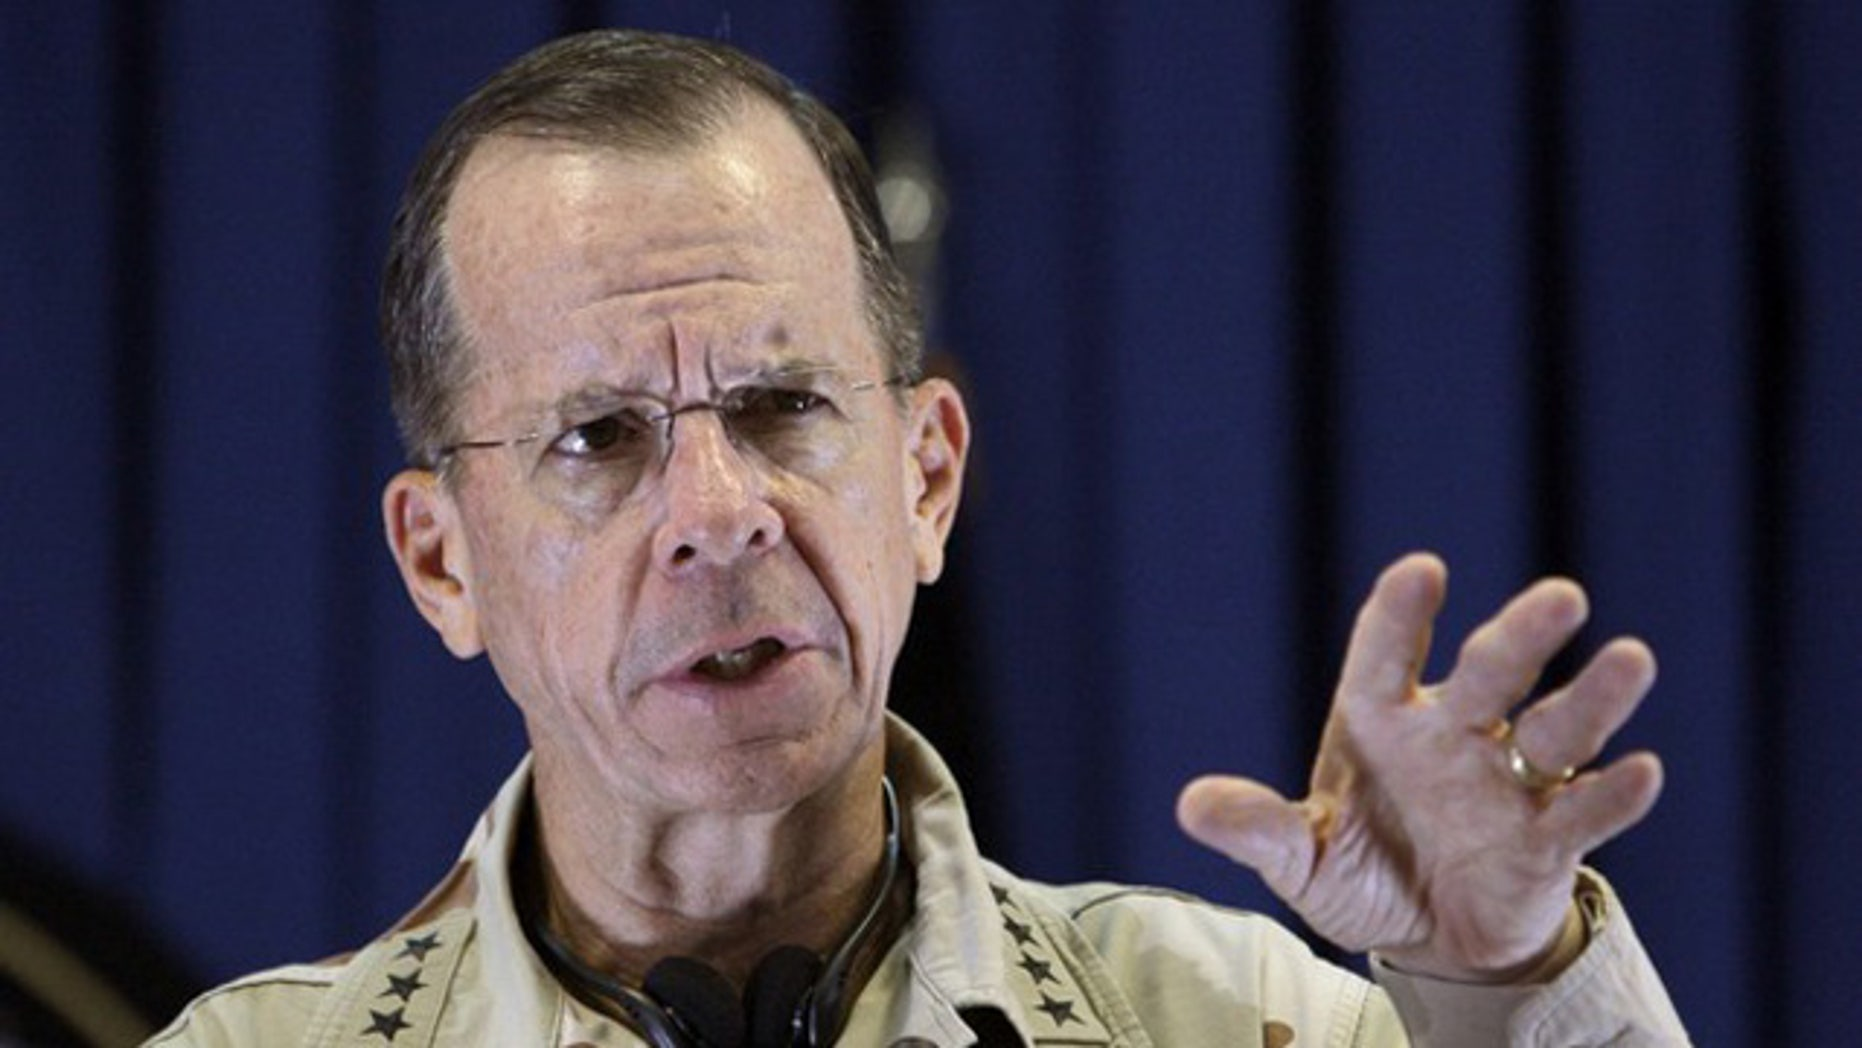 Adm. Mike Mullen speaks during a July 25 news conference in Kabul, Afghanistan. (Reuters Photo)